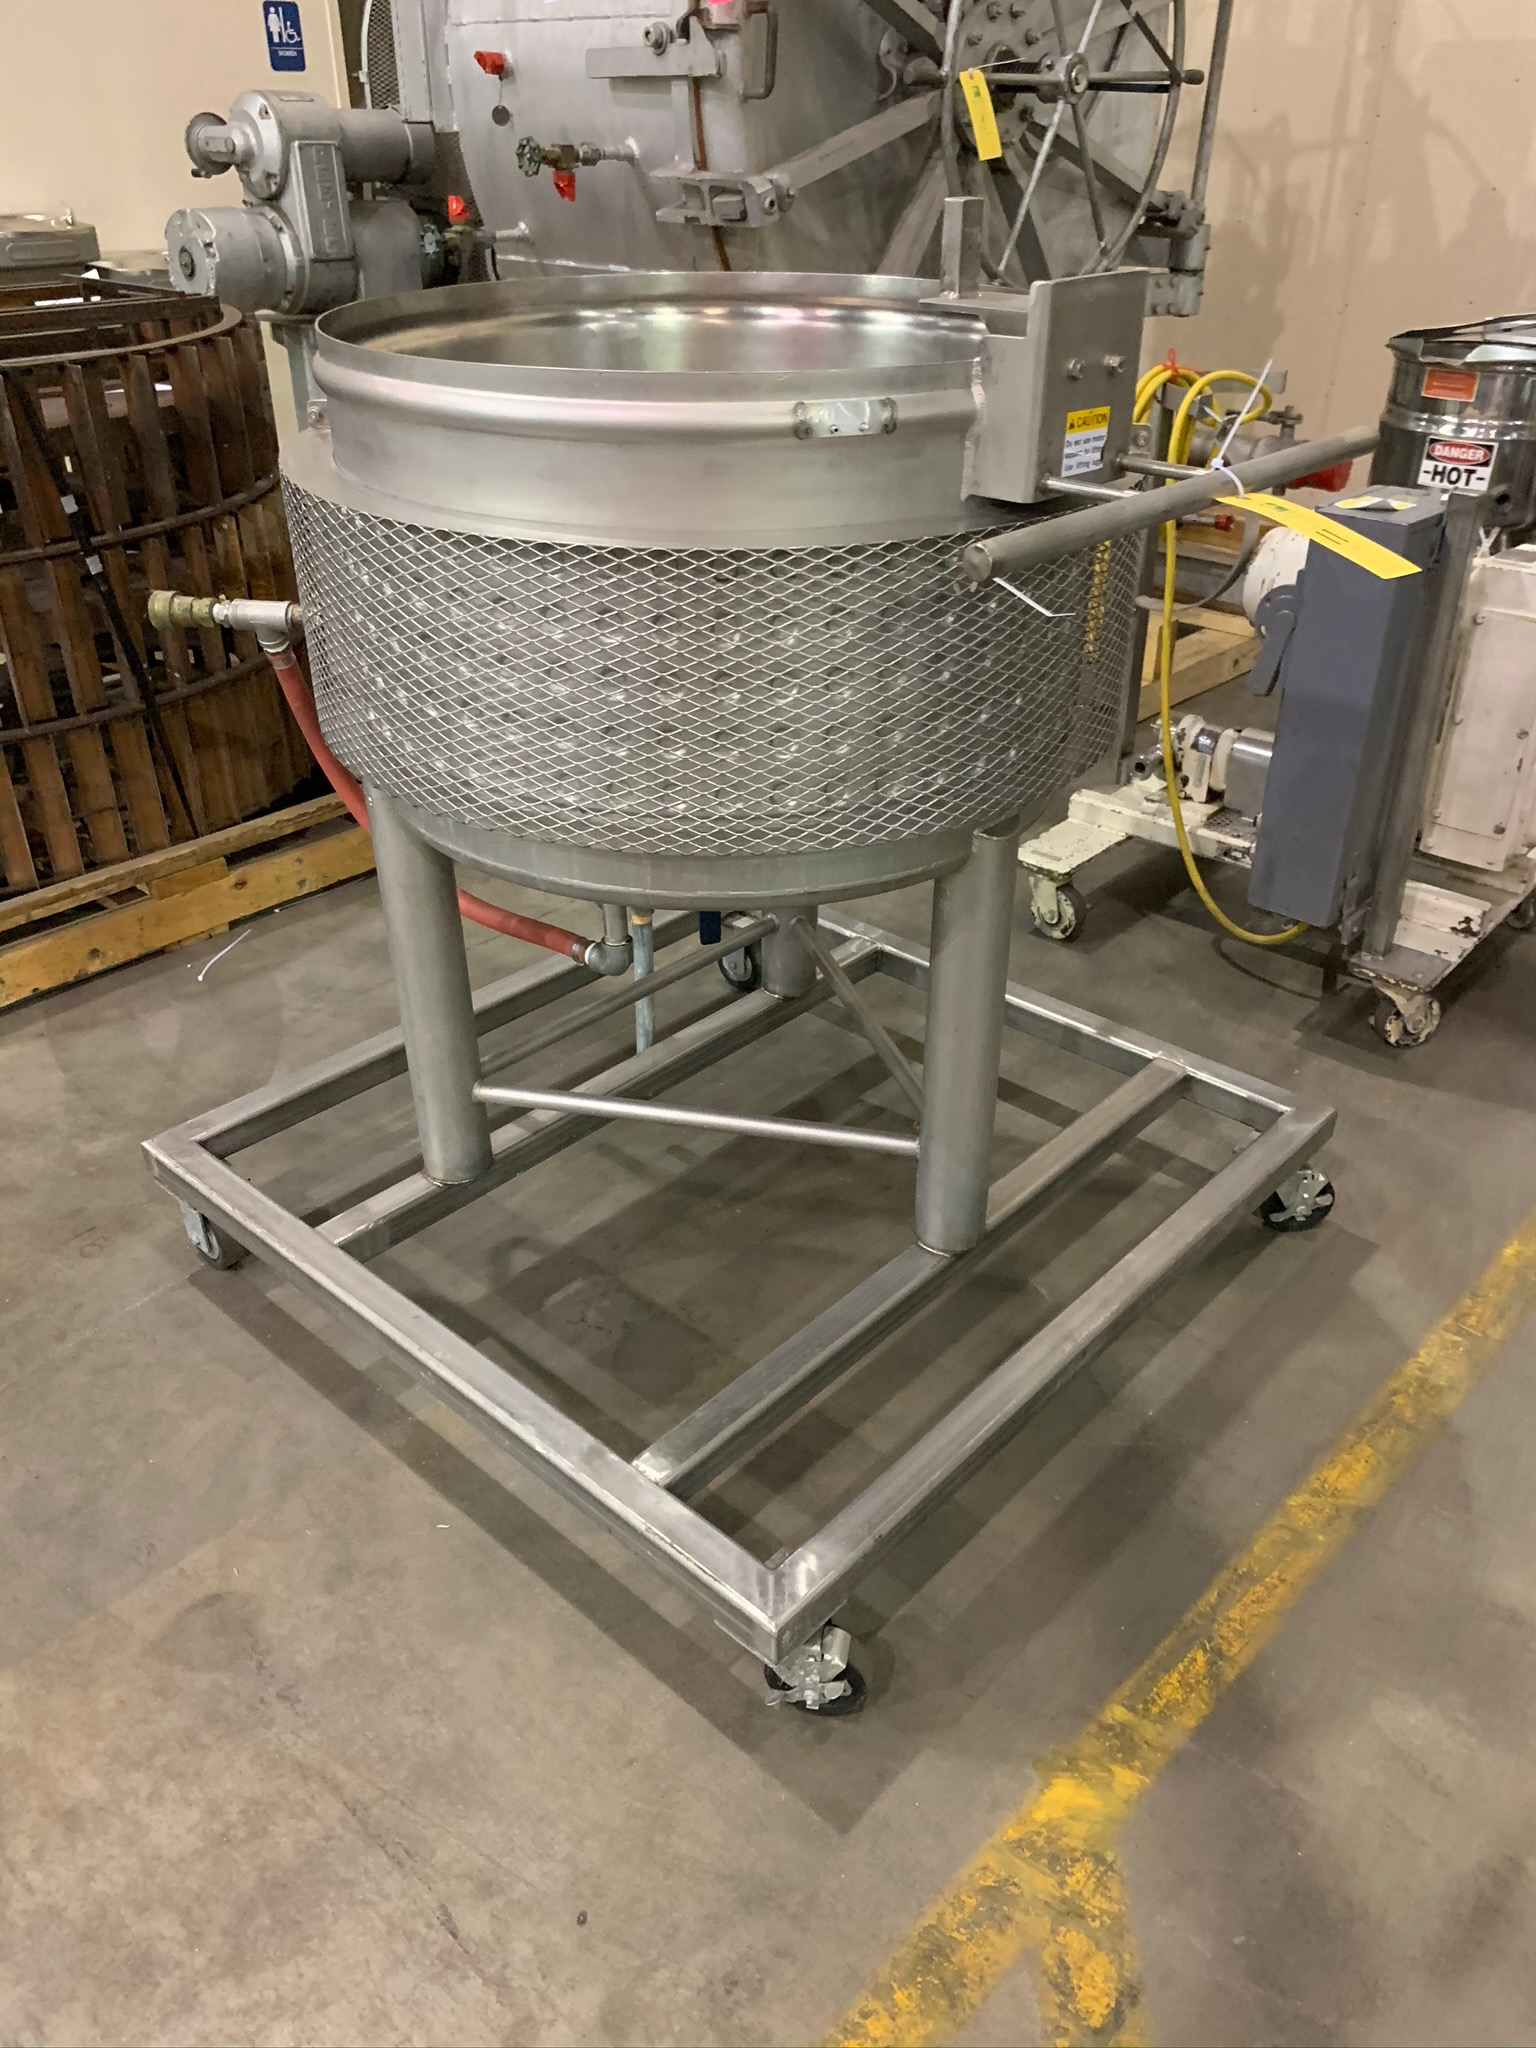 Approximate 25 Gallon Dimple Jacket Kettle Portable on Casters (Rigging Fee - $50)